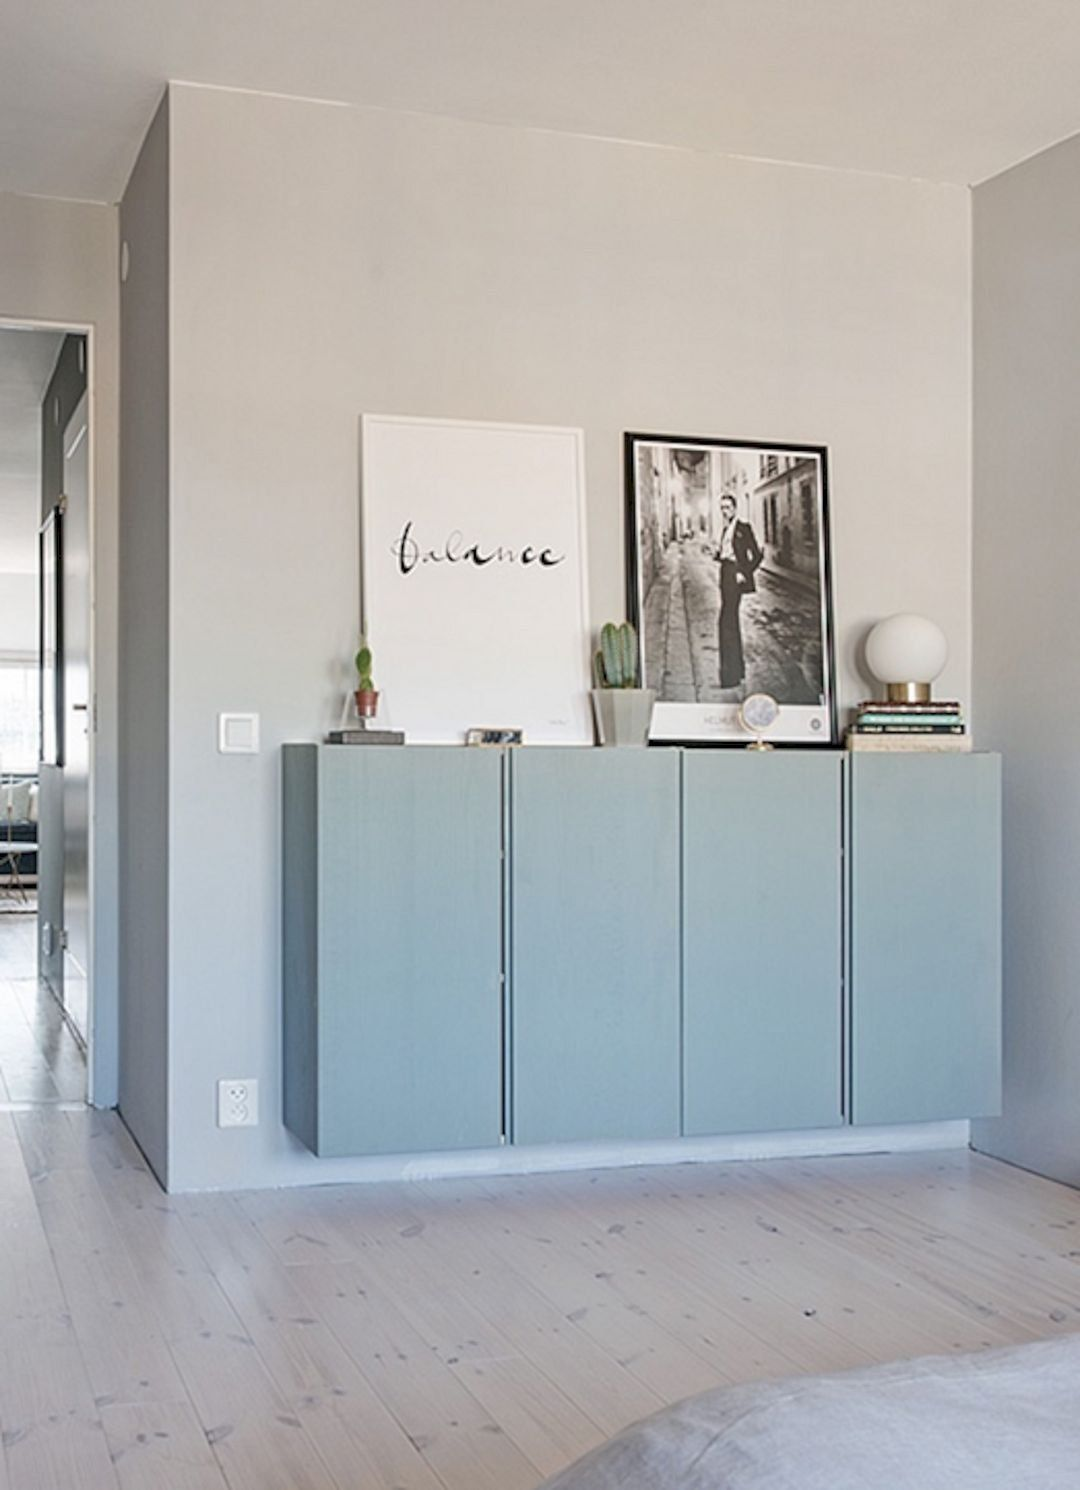 Best Furniture Product And Room Designs Of January 2017: 2017 IKEA Catalog: Bedroom, Kitchen, Chairs, And Many More